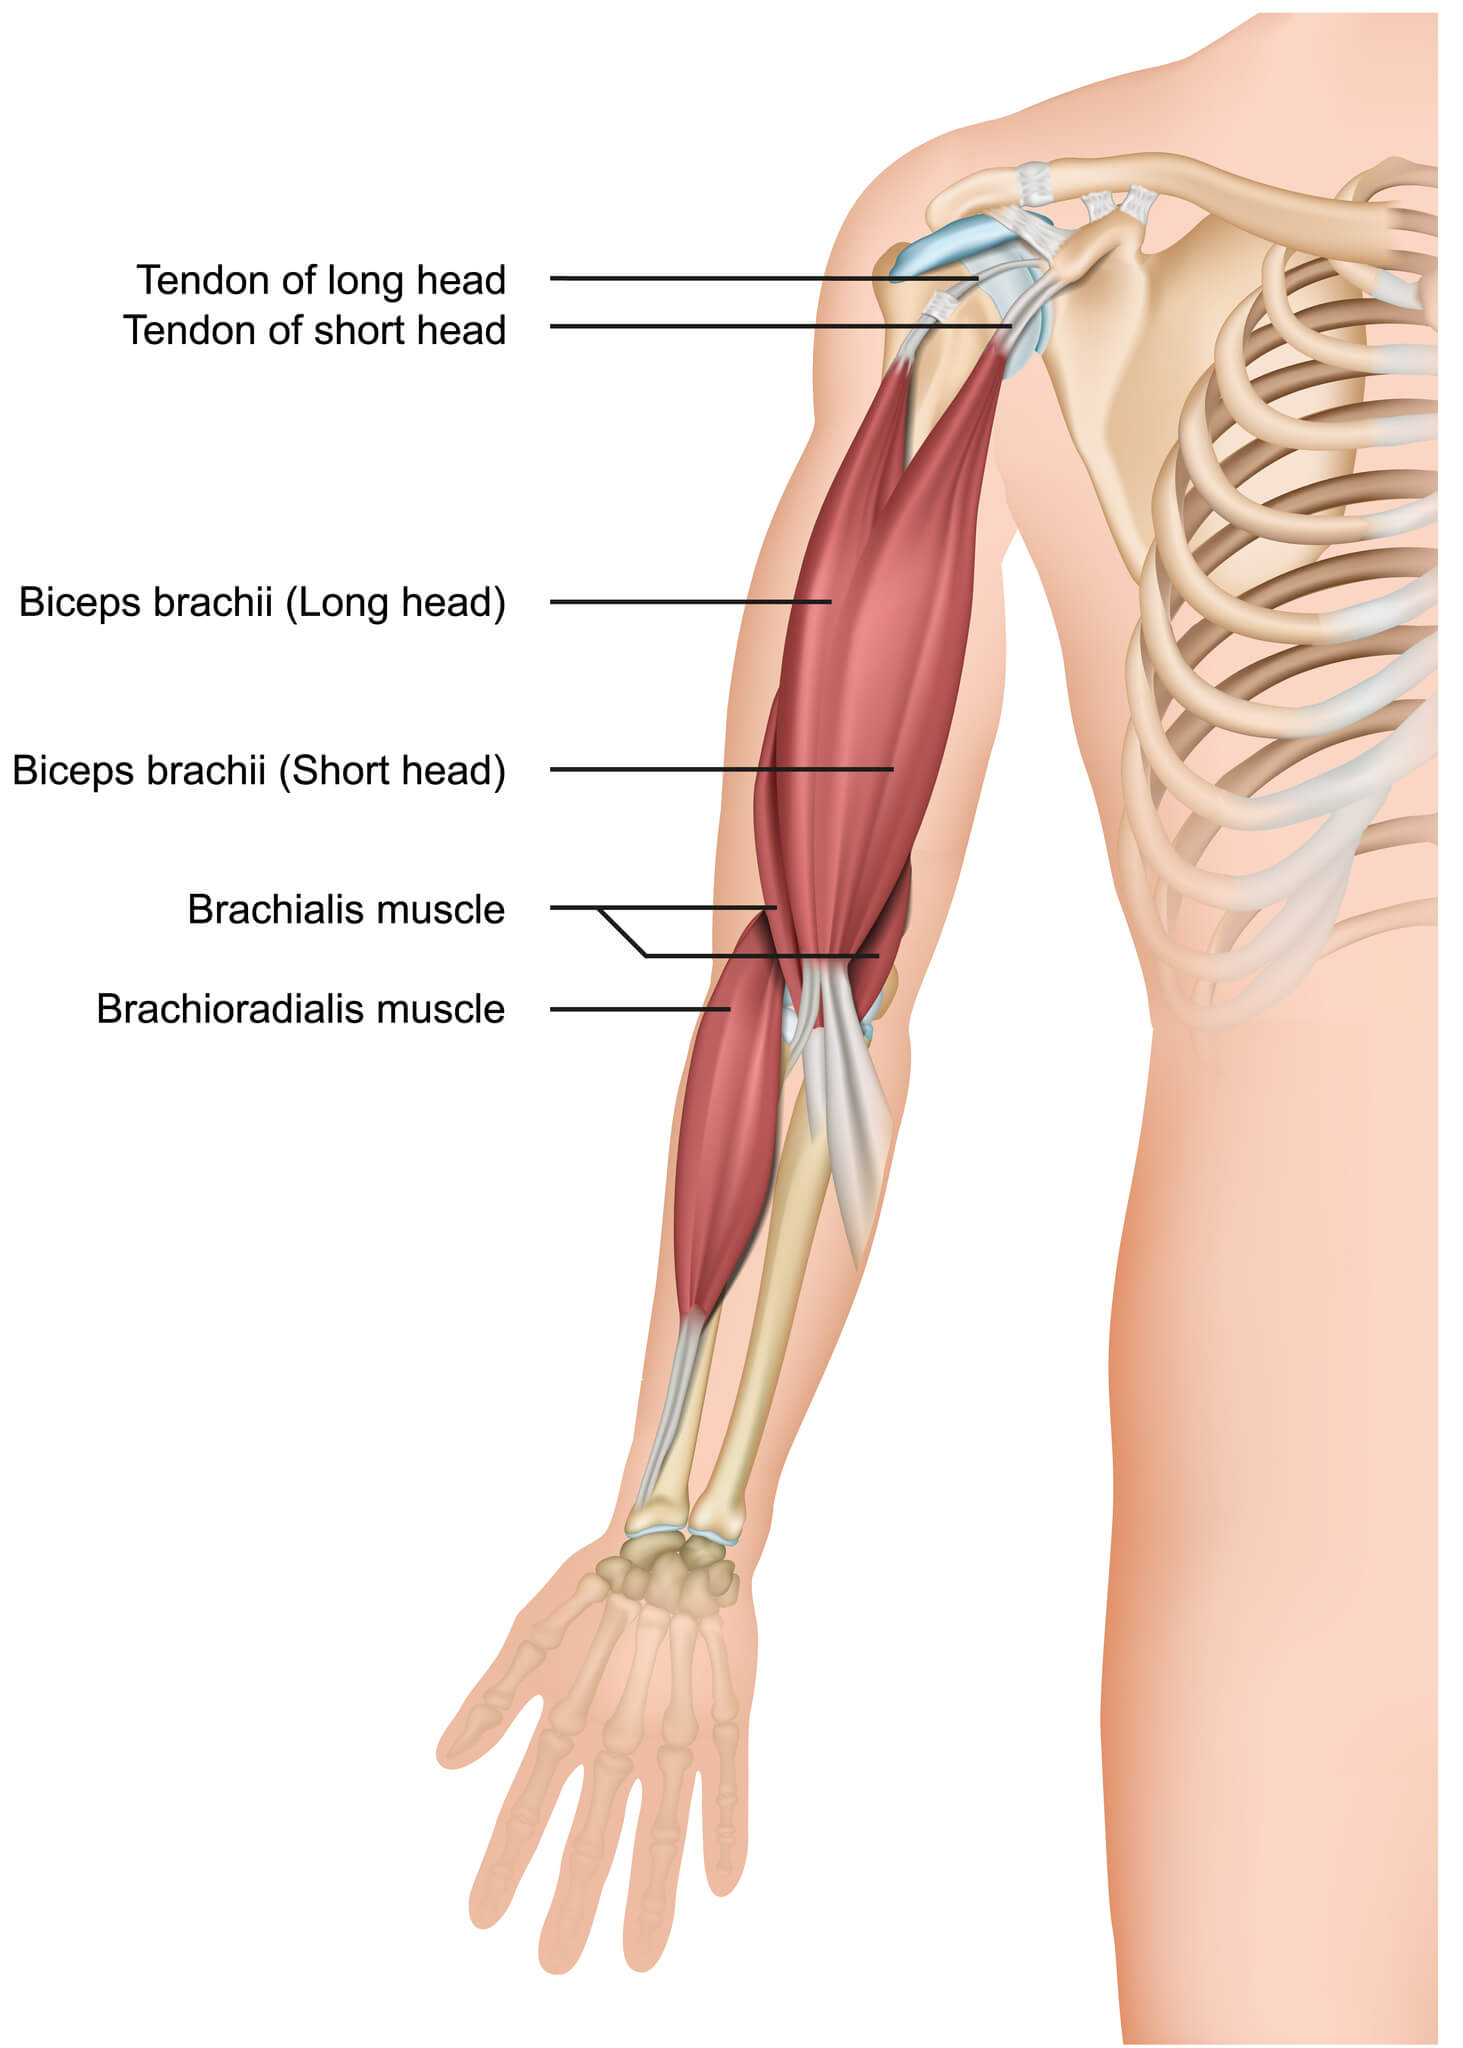 Medical image of bicep muscles and tendons including those affected by bicep tendonitis